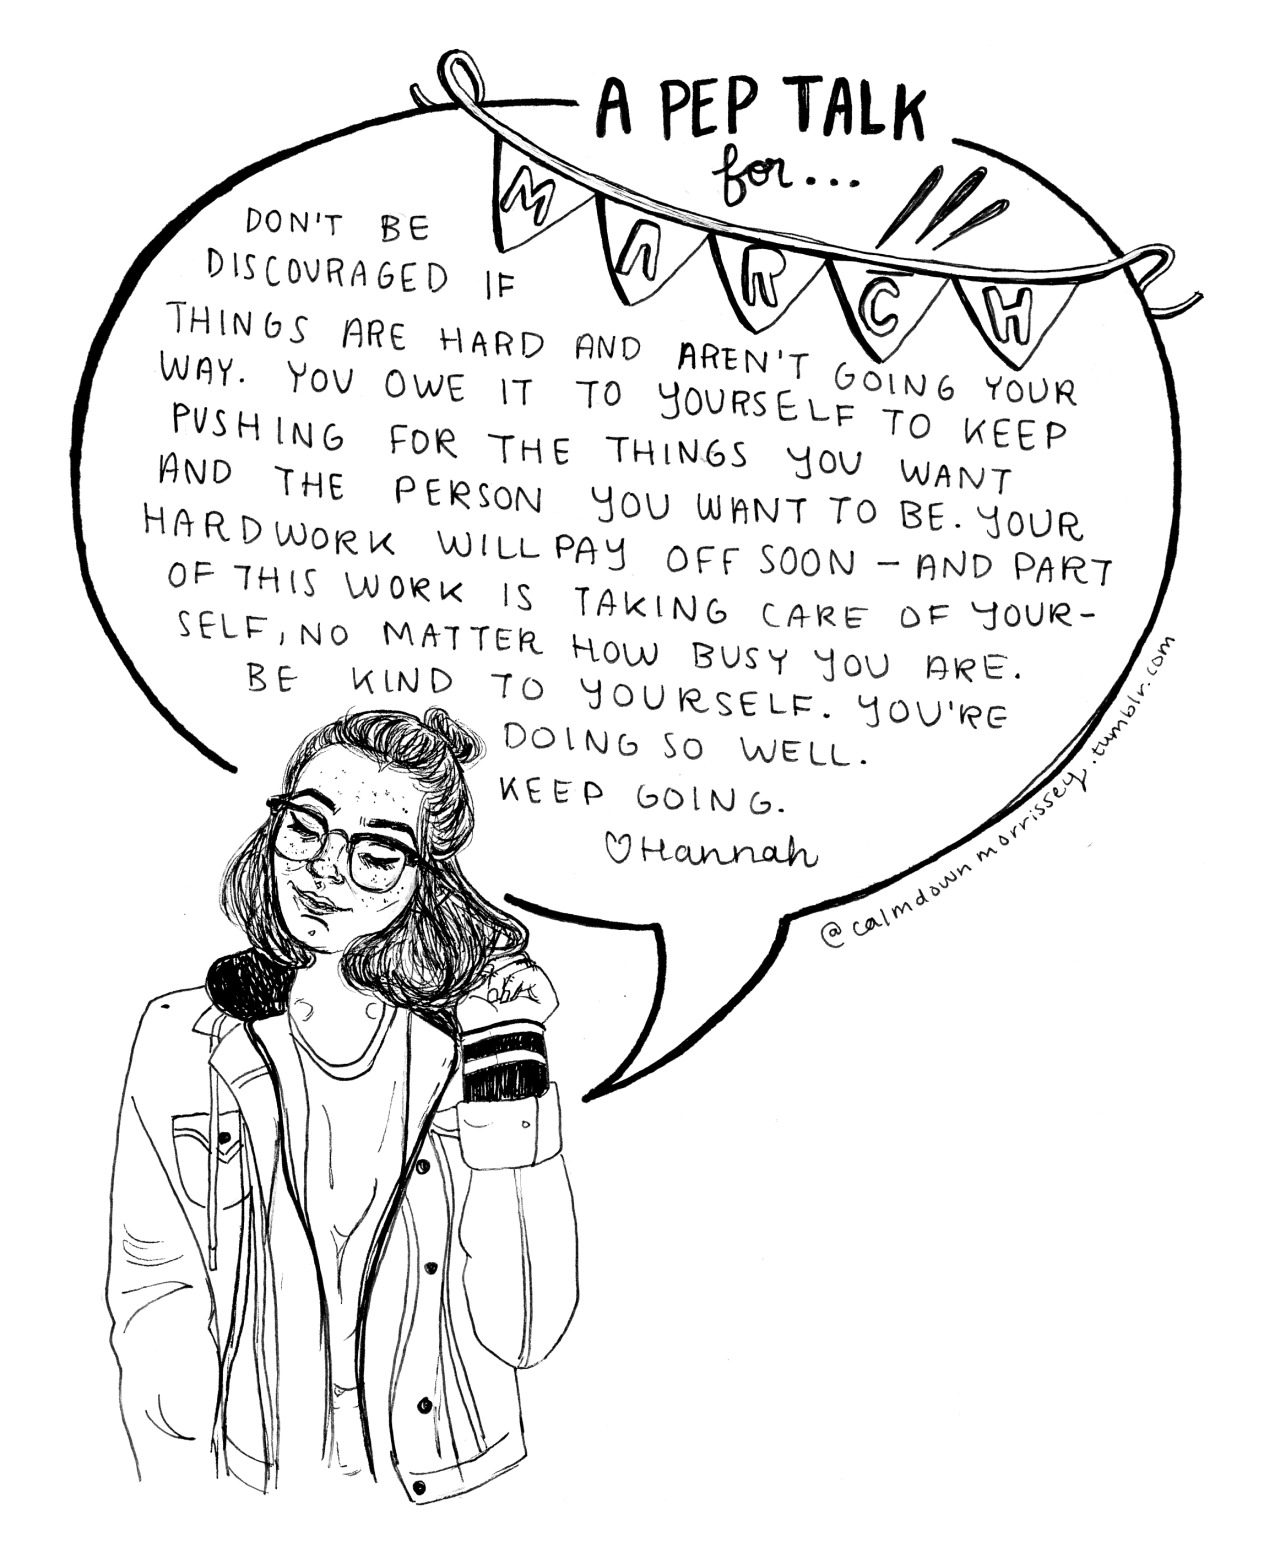 calmdownmorrissey :      plz don't delete caption or erase credit   Helloooo everyone and happy March!!! After my last class today, I will officially be on spring break despite the dreary weather here in the midwest. This means lots more reading, drawing, etc. I hope you all have lots to look forward to as well. This pep talk is a reminder to keep pushing through midterms, mid-semester projects, dreary winter weather, etc. etc.  - ̗̀ My other pep talks can be found   here   + my etsy (which I will be updating very soon) can be found  here   ❀  ̖́-  As a final note, I've been getting lots of messages saying people see my artwork uncredited everywhere and can't find me so even though I watermark/sign my art, pleaseeee include credit if you decide to share it elsewhere. My insta is calmdowmoz  if you share there as well.       So much love to you all and I hope this pep talk has lots to offer you in the coming month.   Love always, Hannah xx